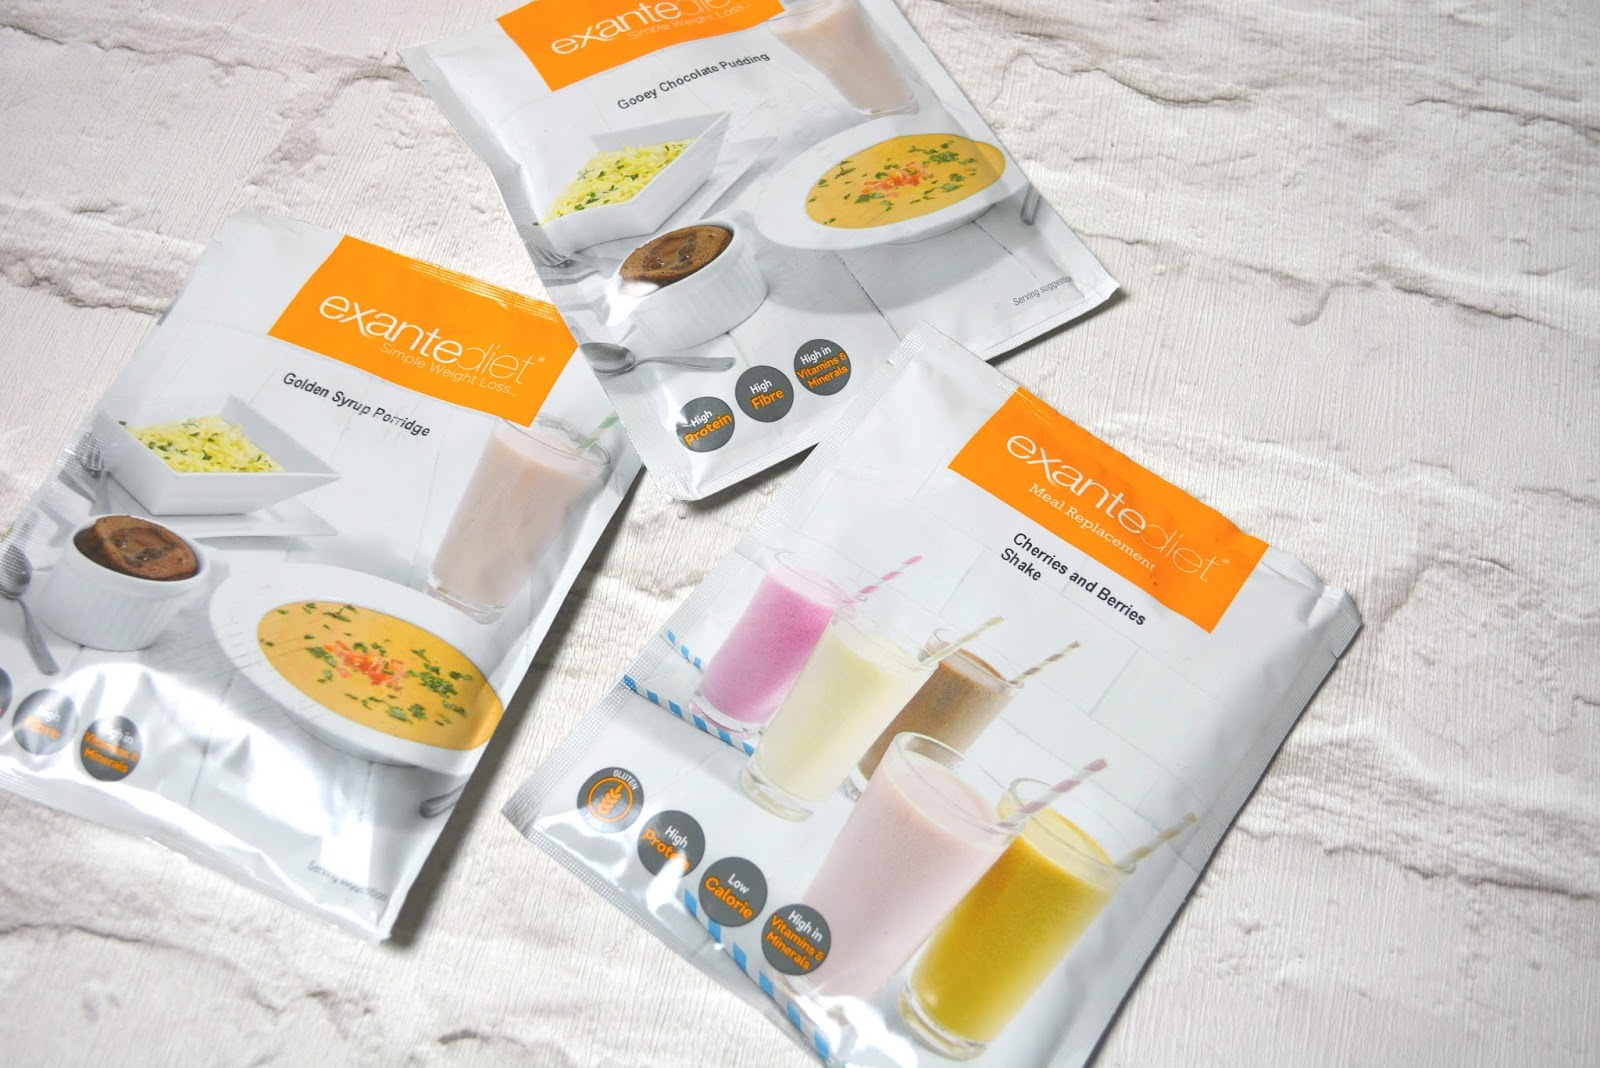 products, review, exante, diet, fitness, food, foodie, healthy, meal replacement